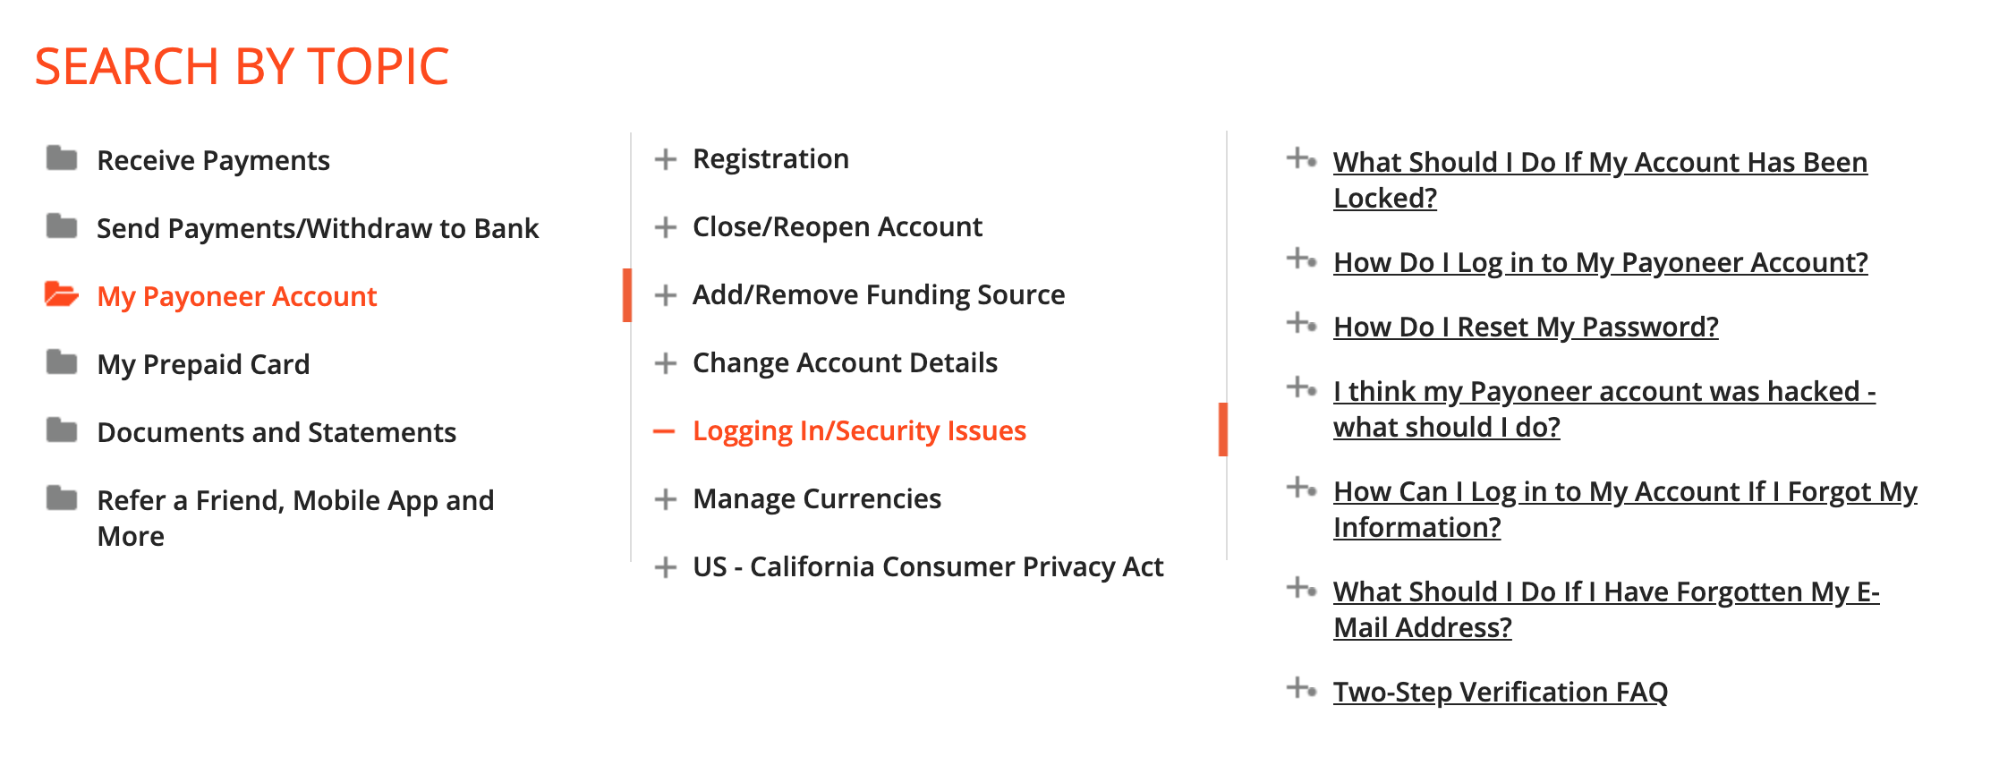 Payoneer Support Center search by topic